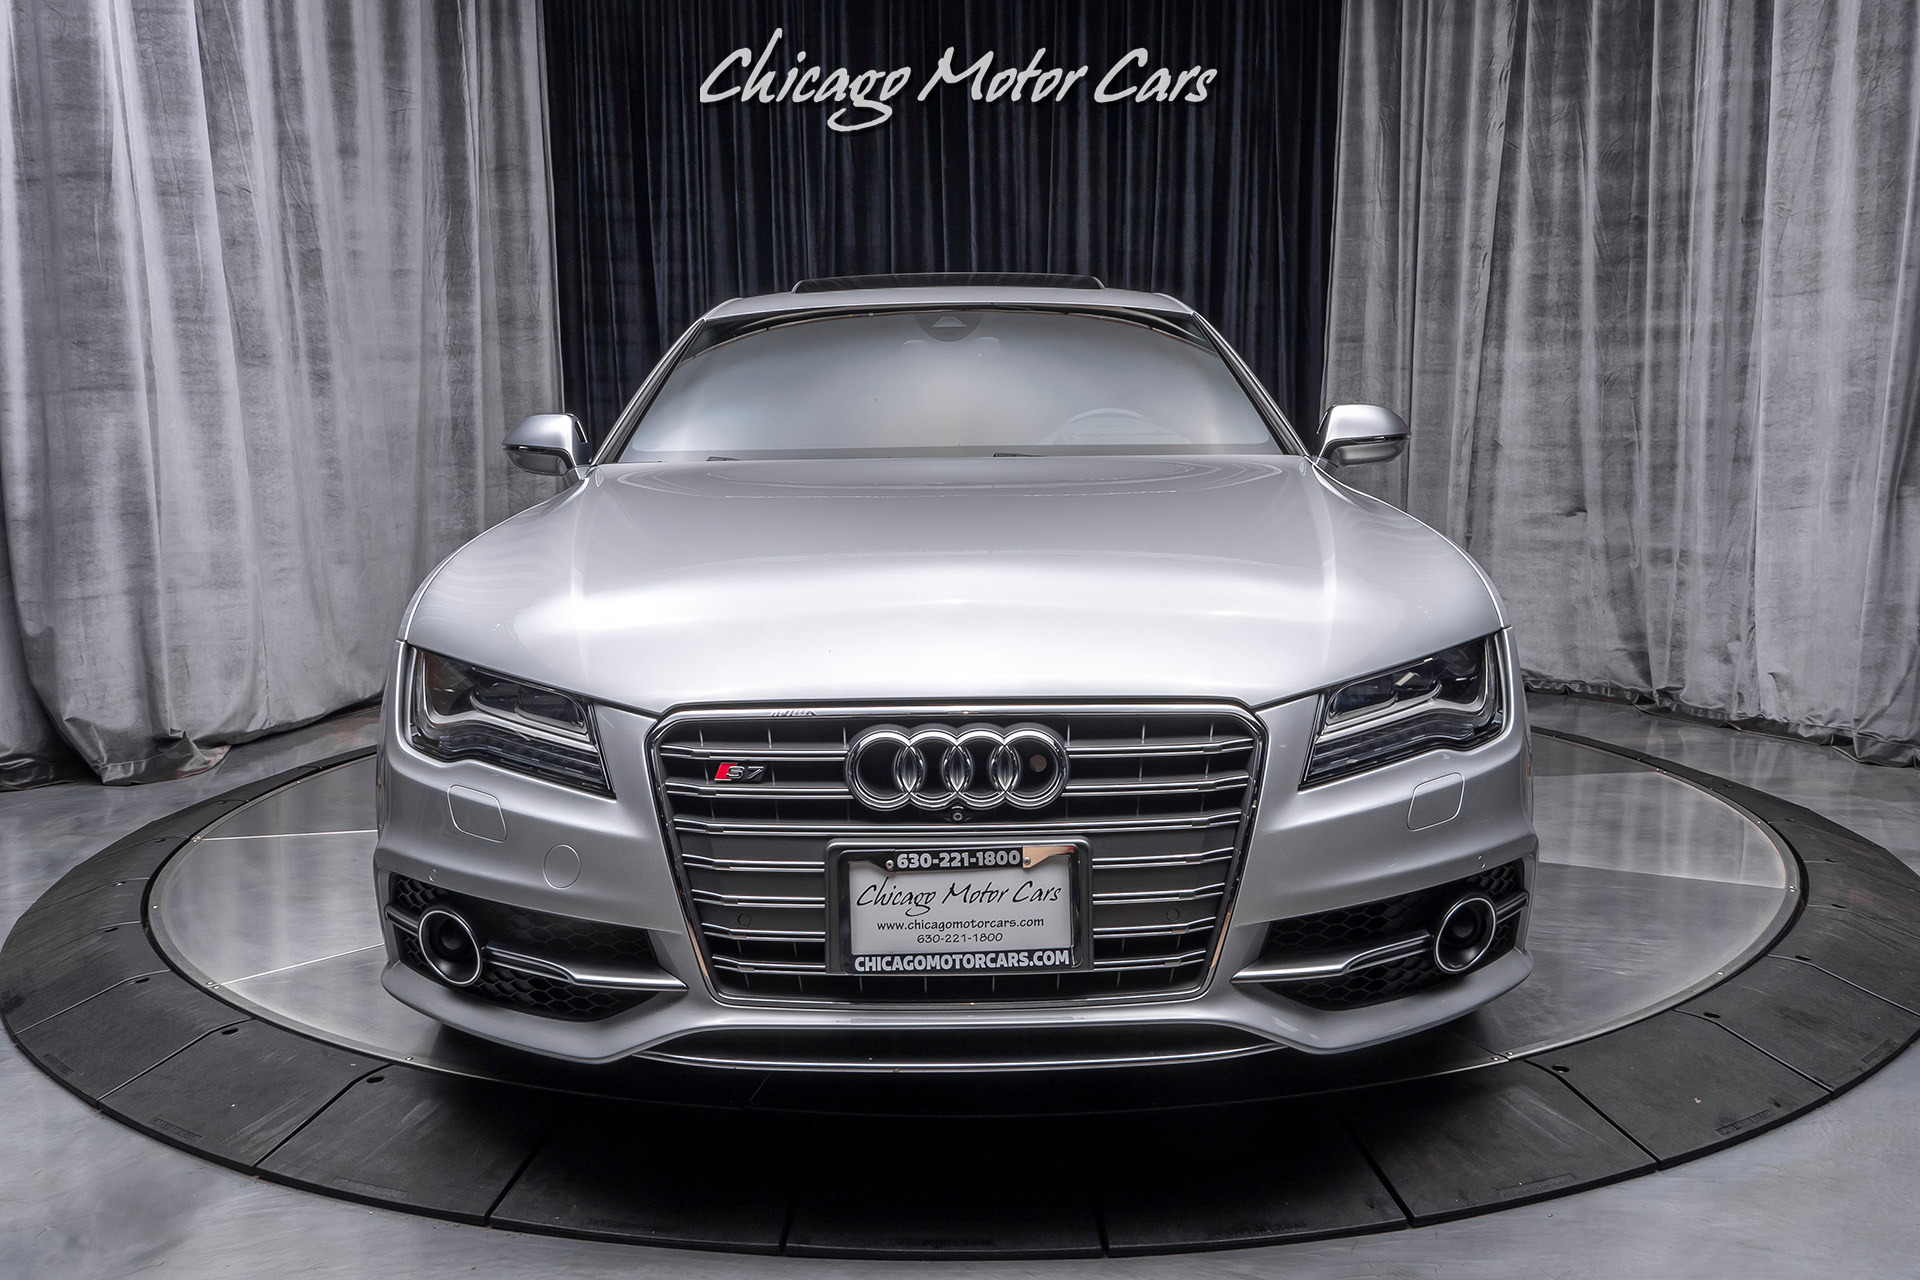 Used-2013-Audi-S7-quattro-S-tronic-Hatchback-MSRP-97K-INNOVATION-PACKAGE